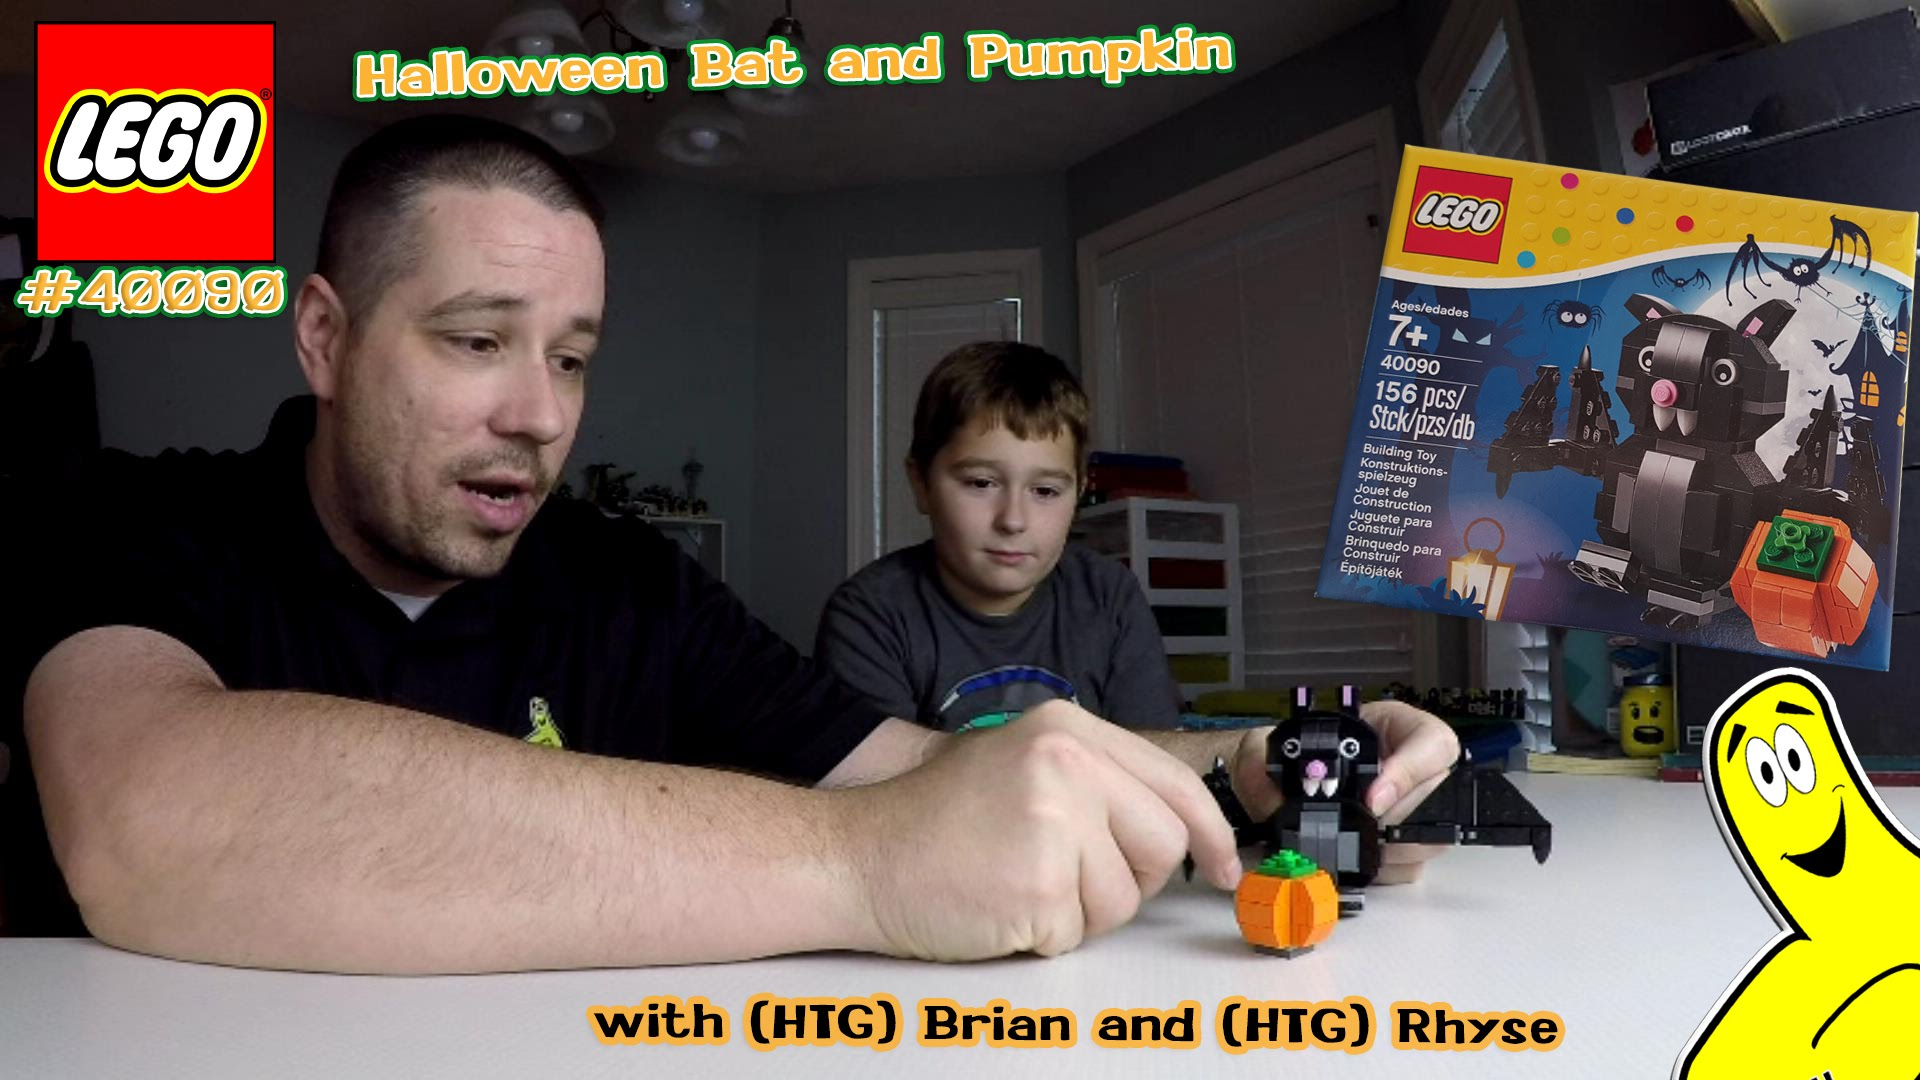 LEGO Speed Build: Halloween Bat & Pumpkin set #40090 (+ Oct 16 contest info) – HTG